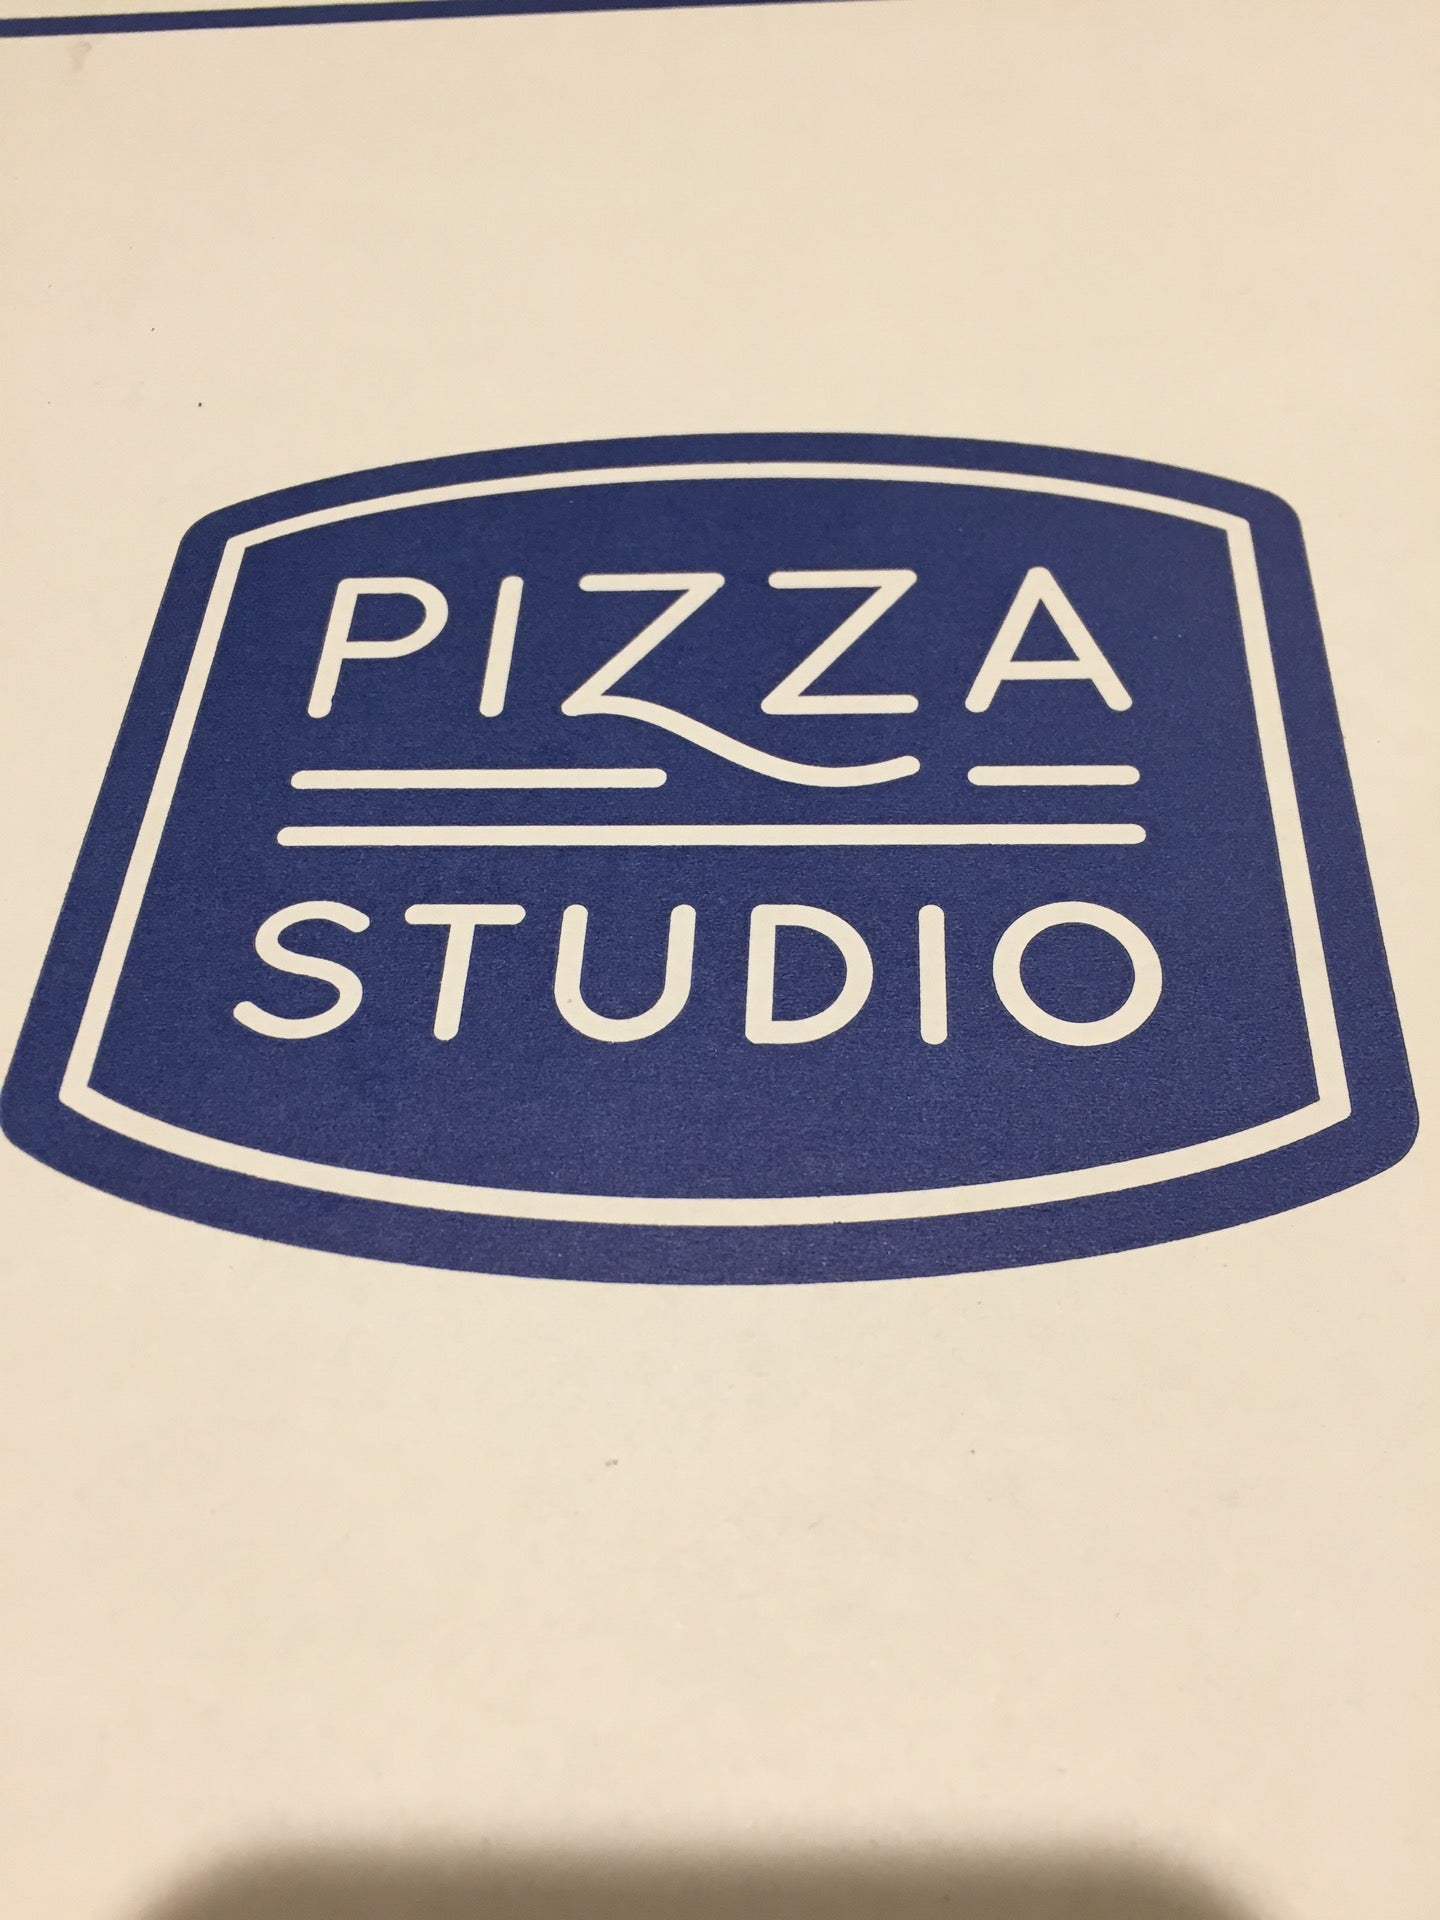 PIZZA STUDIO,